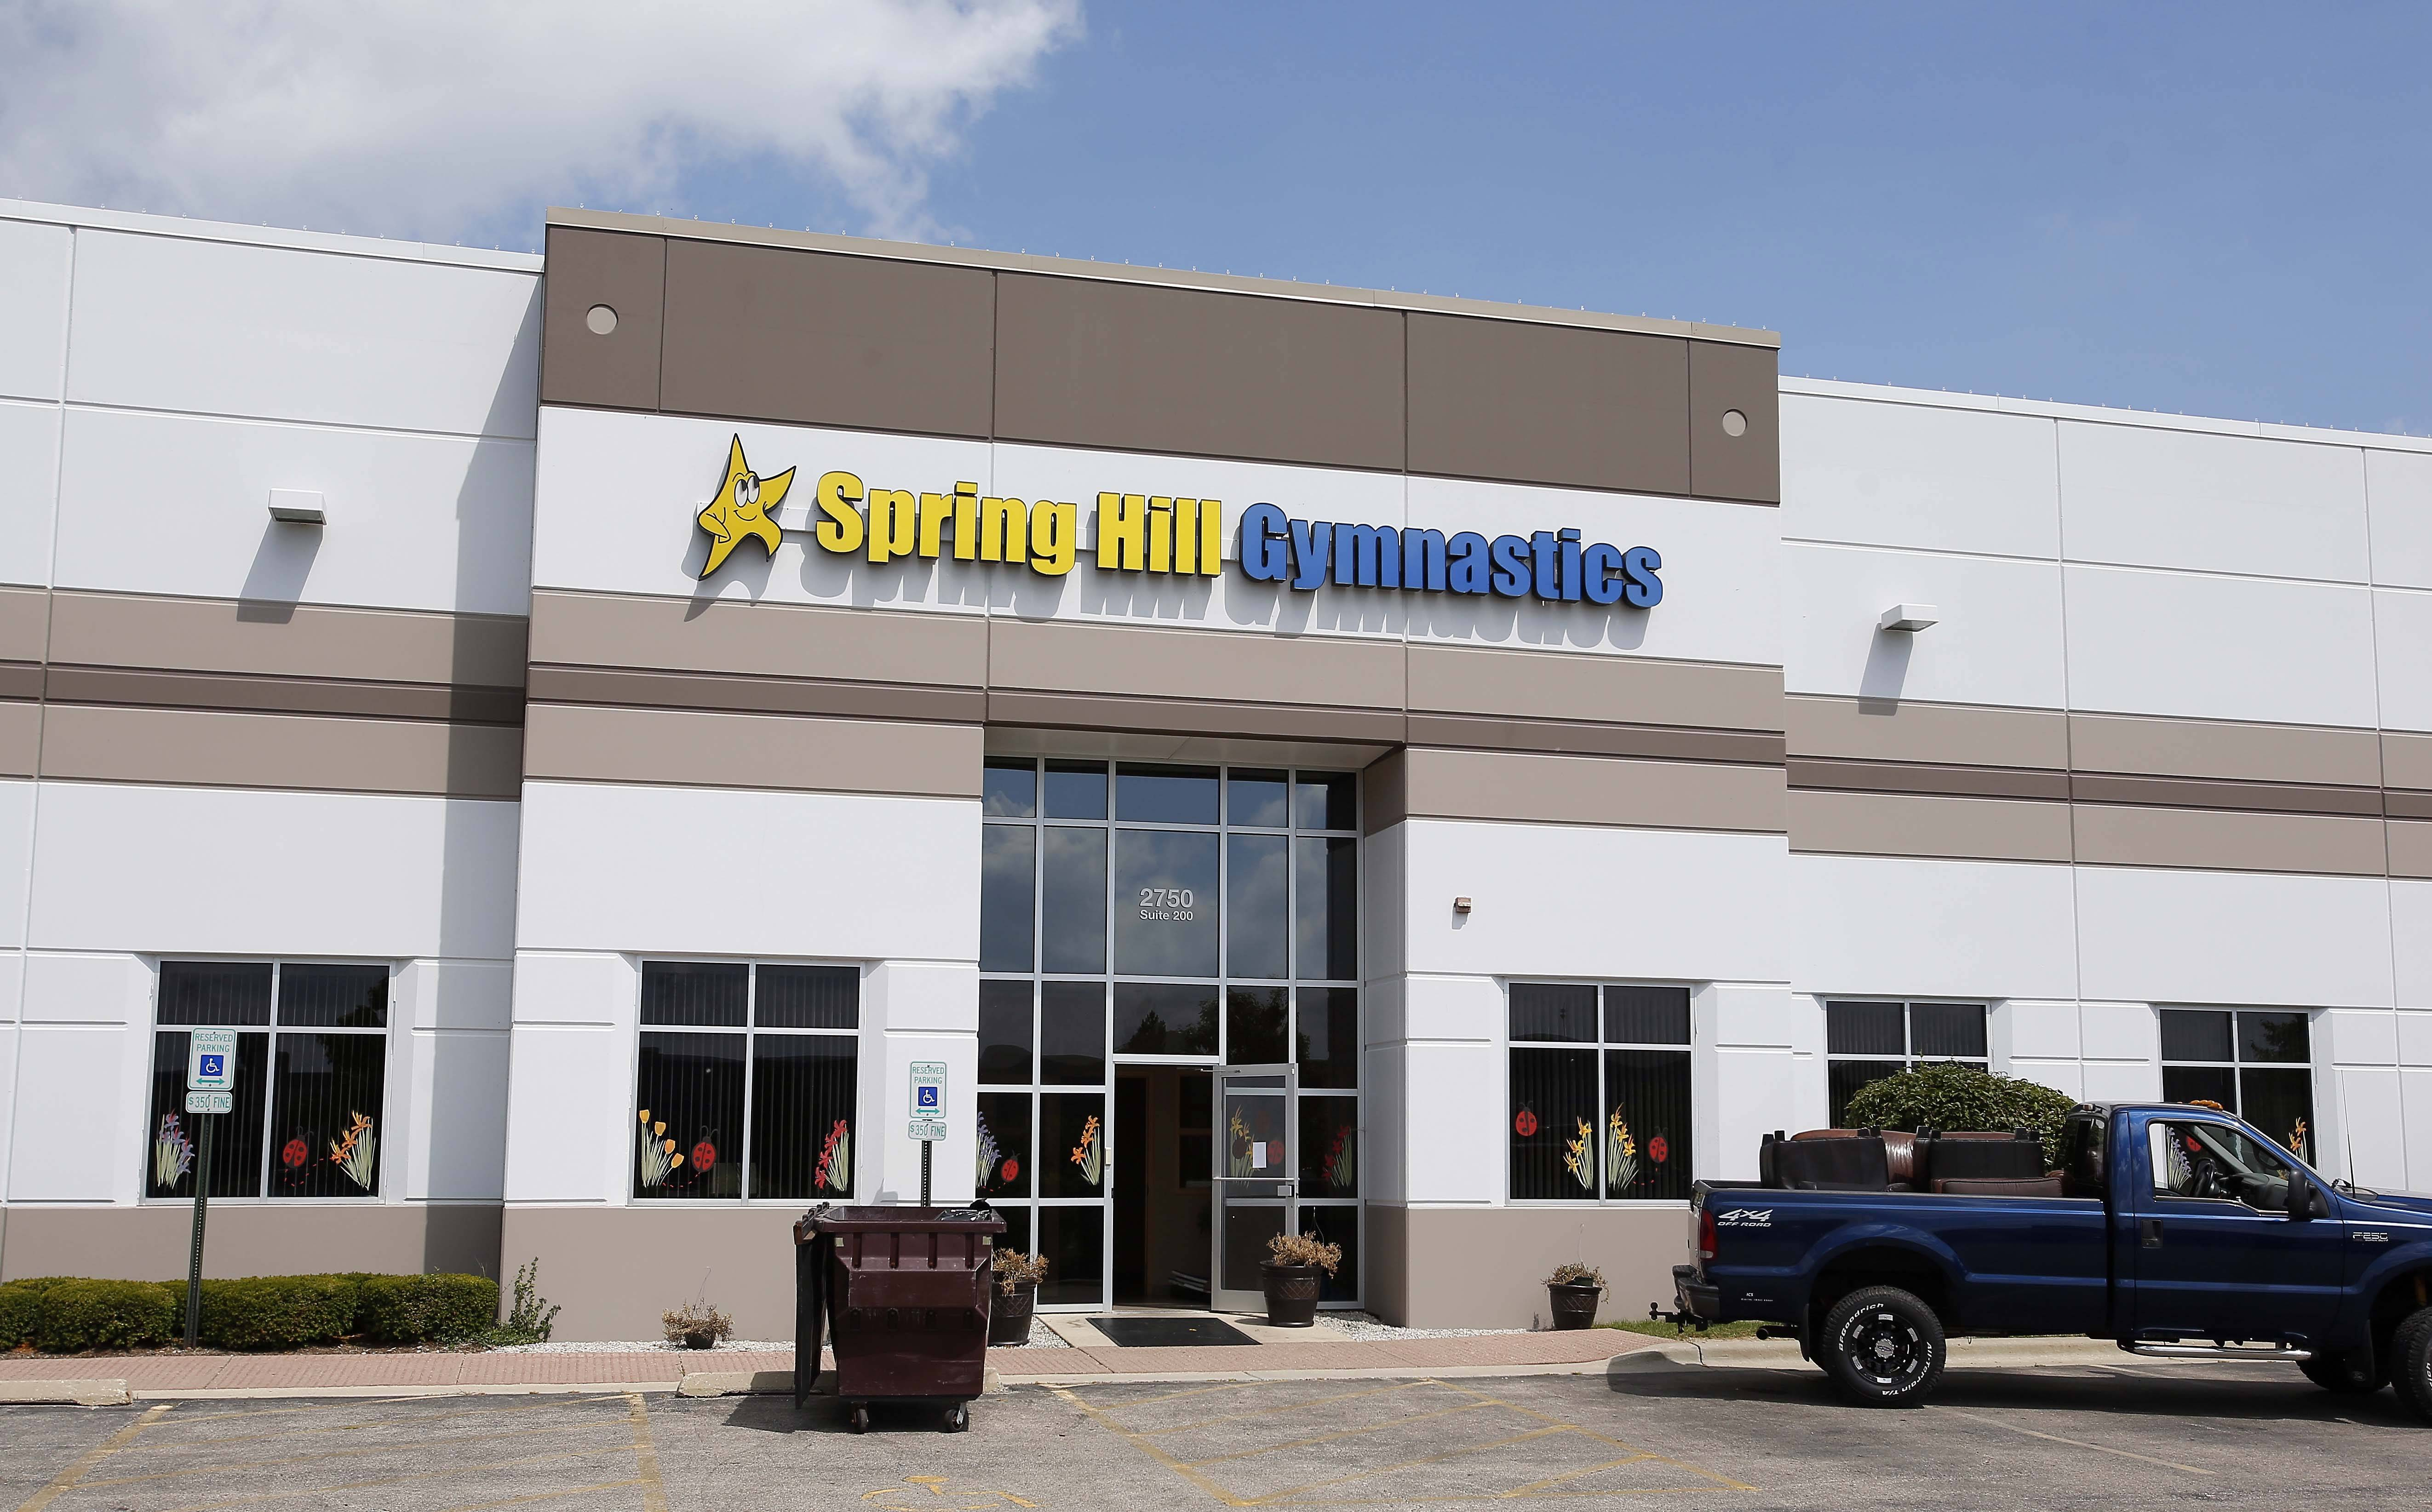 Spring Hill Gymnastics, which has been at 2750 Pinnacle Drive for about a decade, closed abruptly this week after owners decided they could no longer afford to keep up operations.